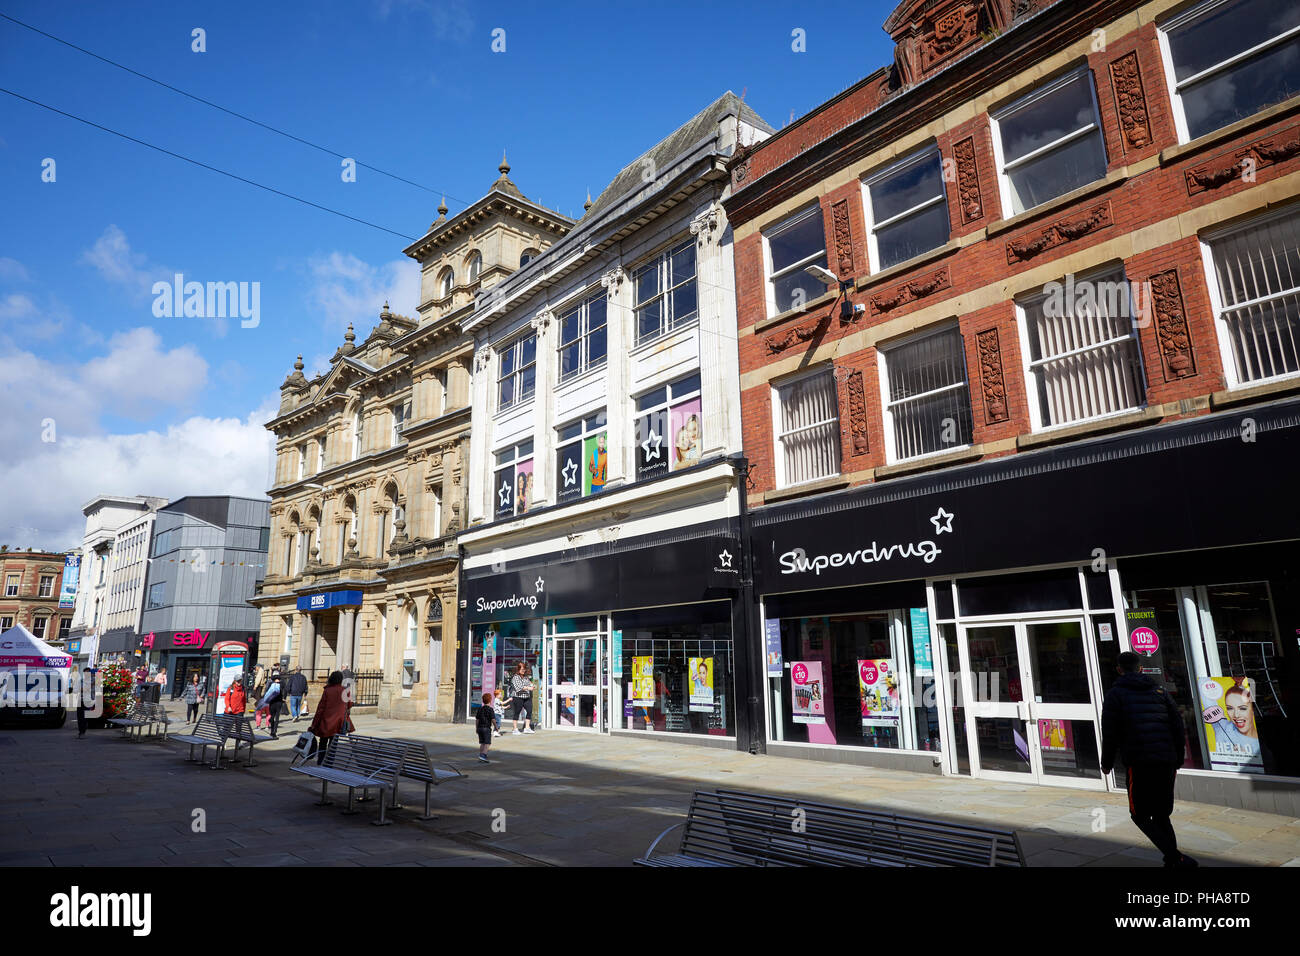 Superdrug and RBS on Deansgate the main shopping area in Bolton town centre Lancashire - Stock Image